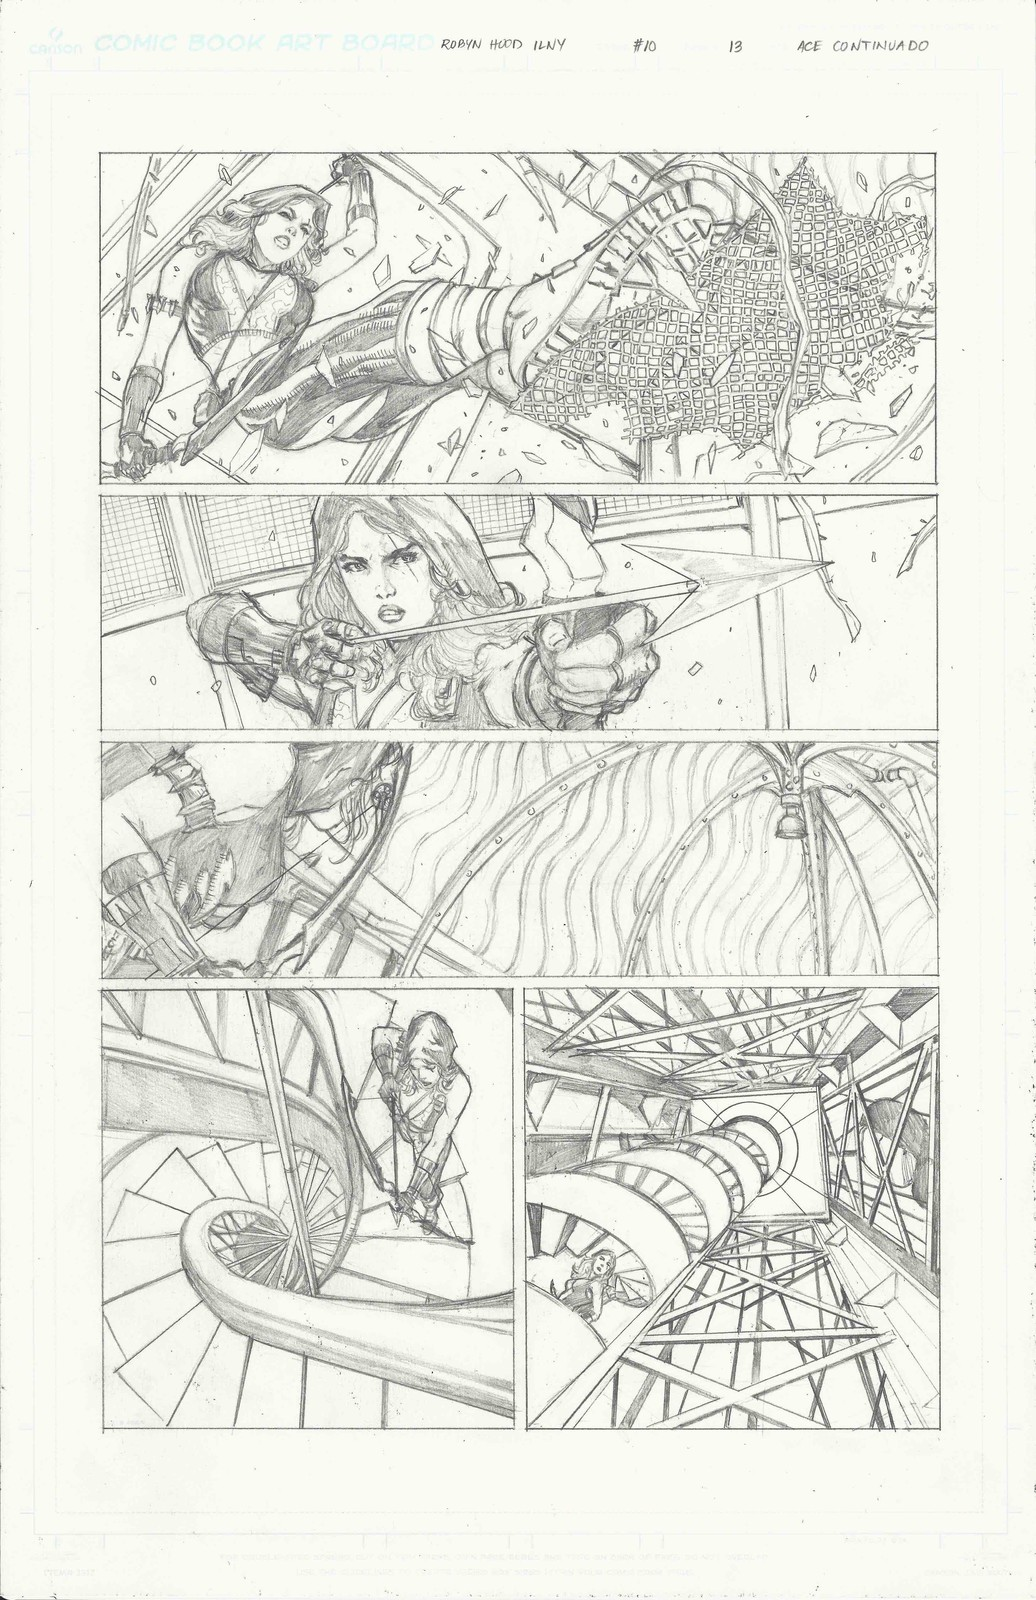 Page 13 of Robyn Hood I Love New York #10 from Zenescope Entertainment.